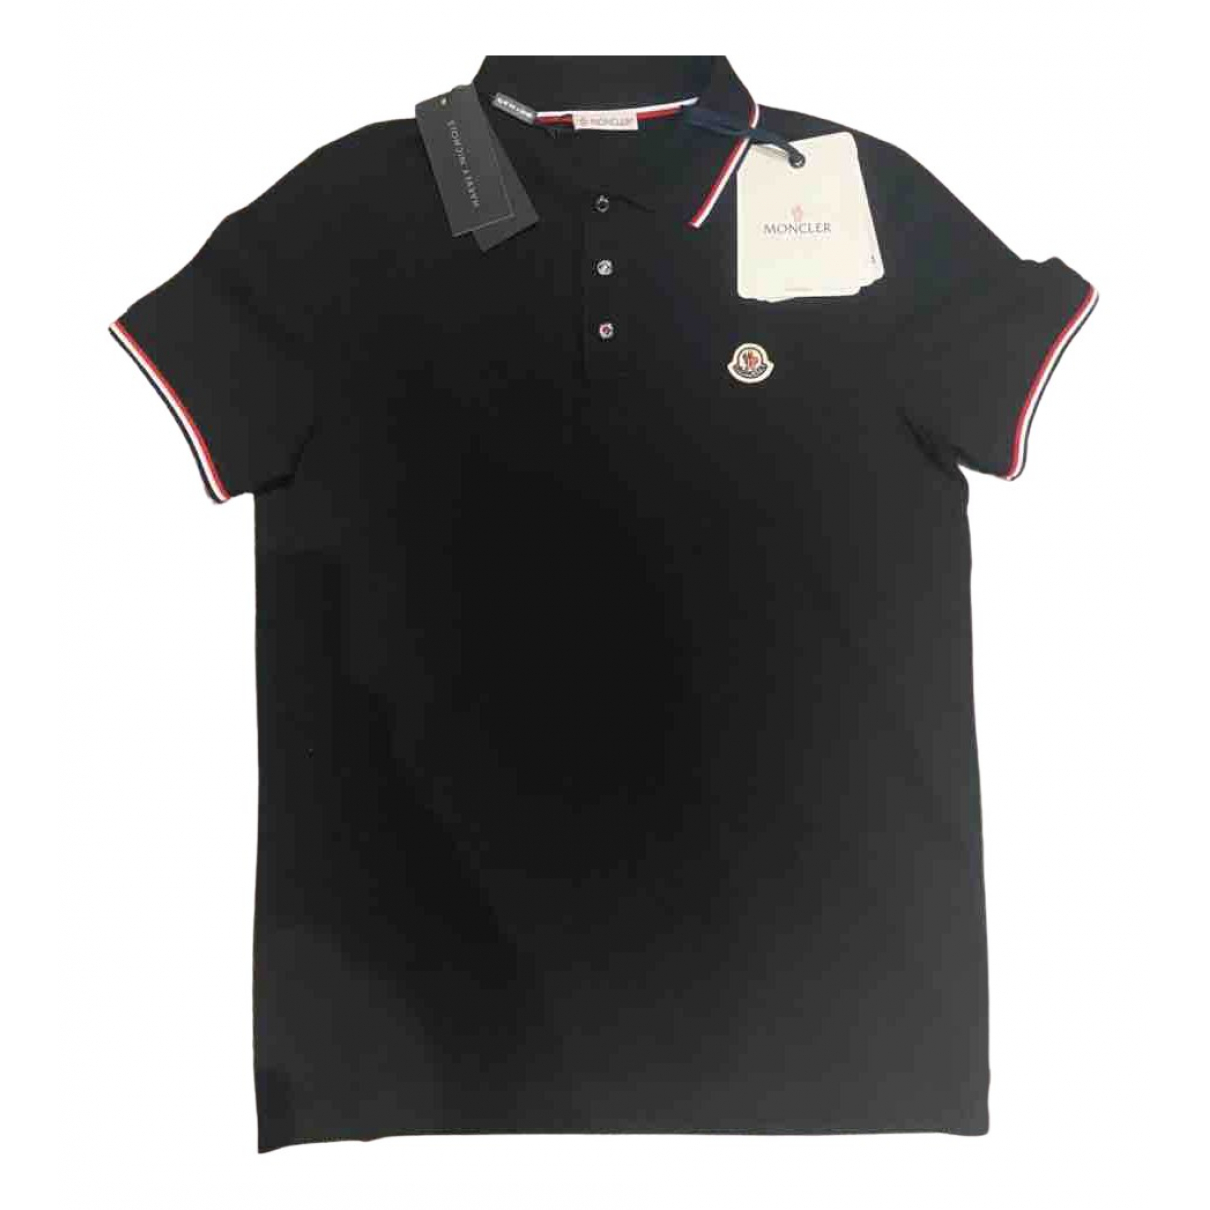 Moncler \N Black Cotton Polo shirts for Men S International